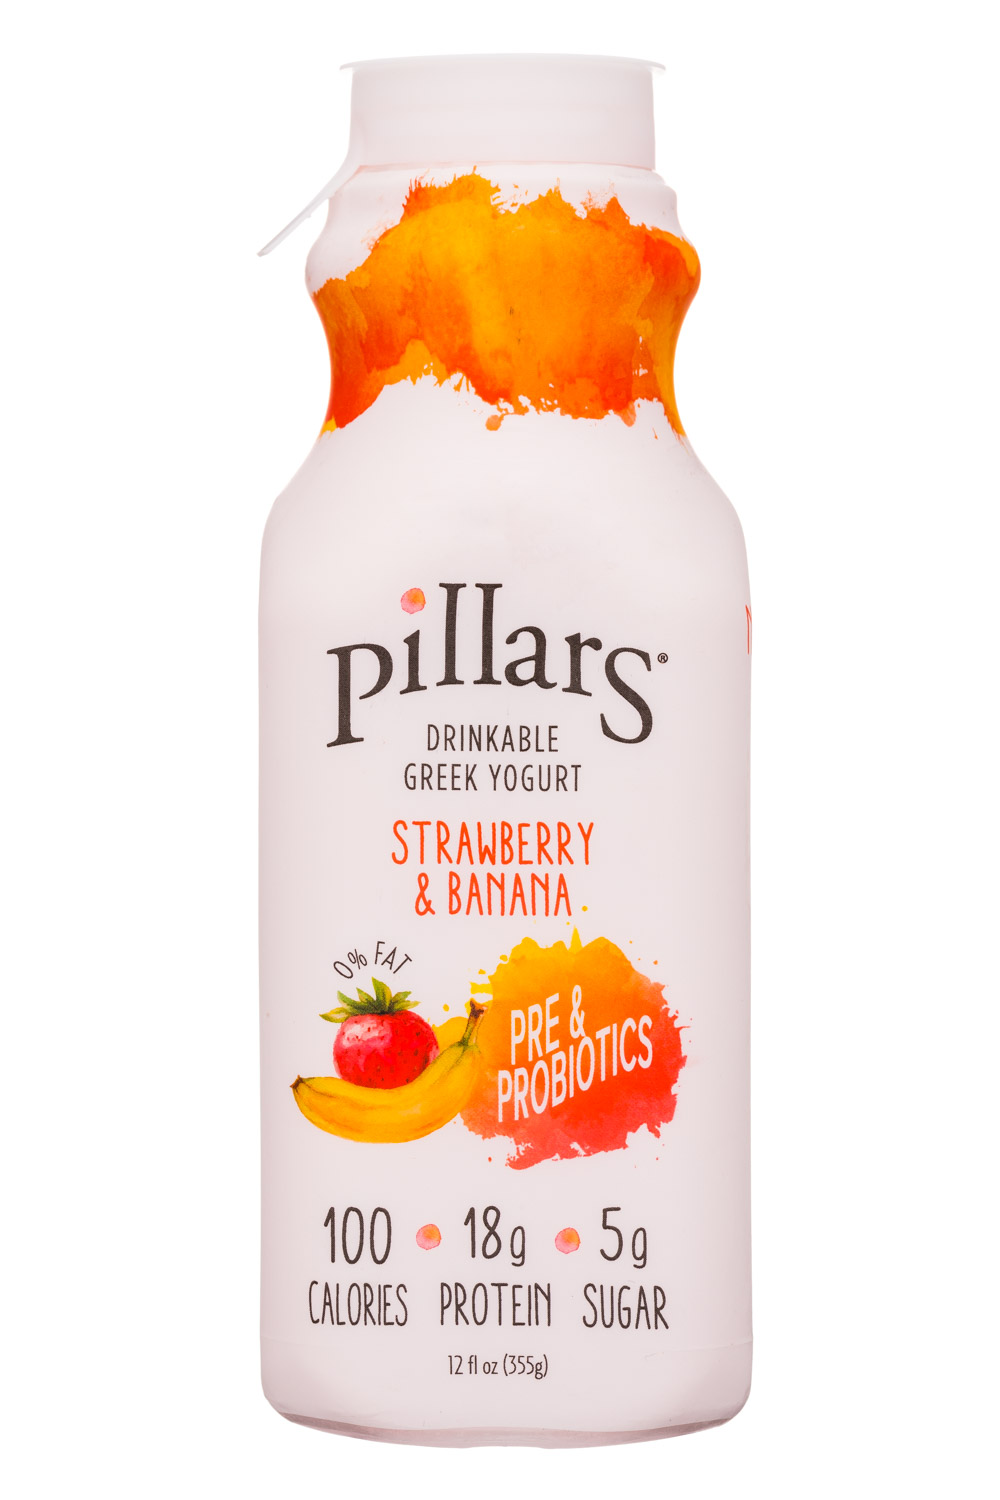 Pillars Drinkable Greek Yogurt: Pillars-12oz-RTDGreekYogurt-StrawberryBanana-Front